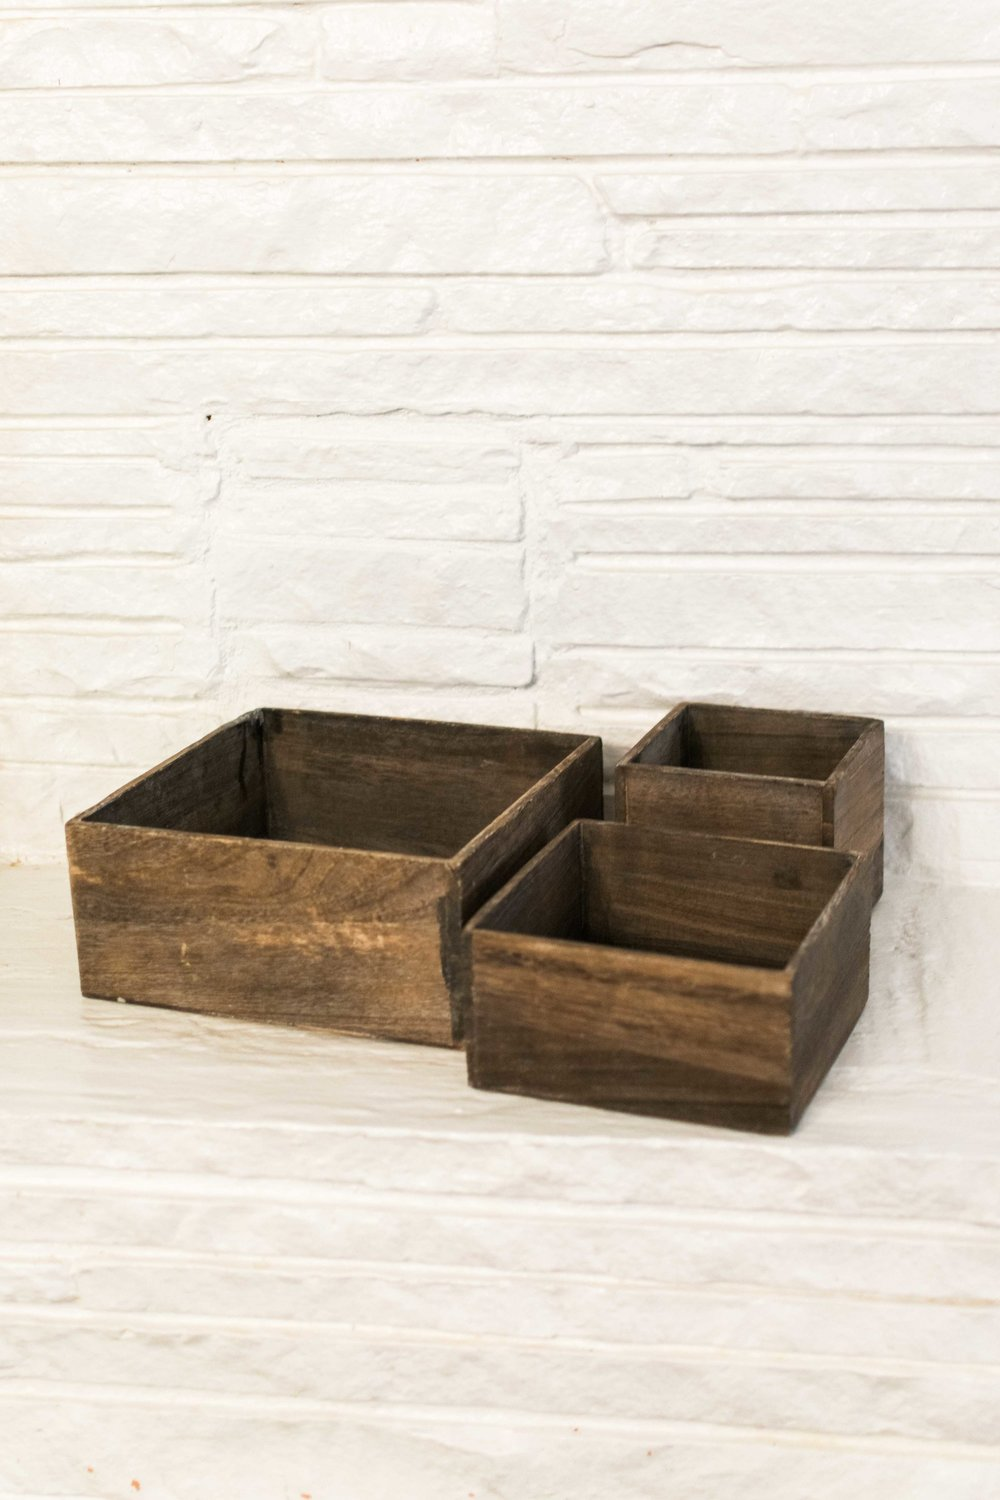 Assorted Wooden Boxes   Quantity: 45